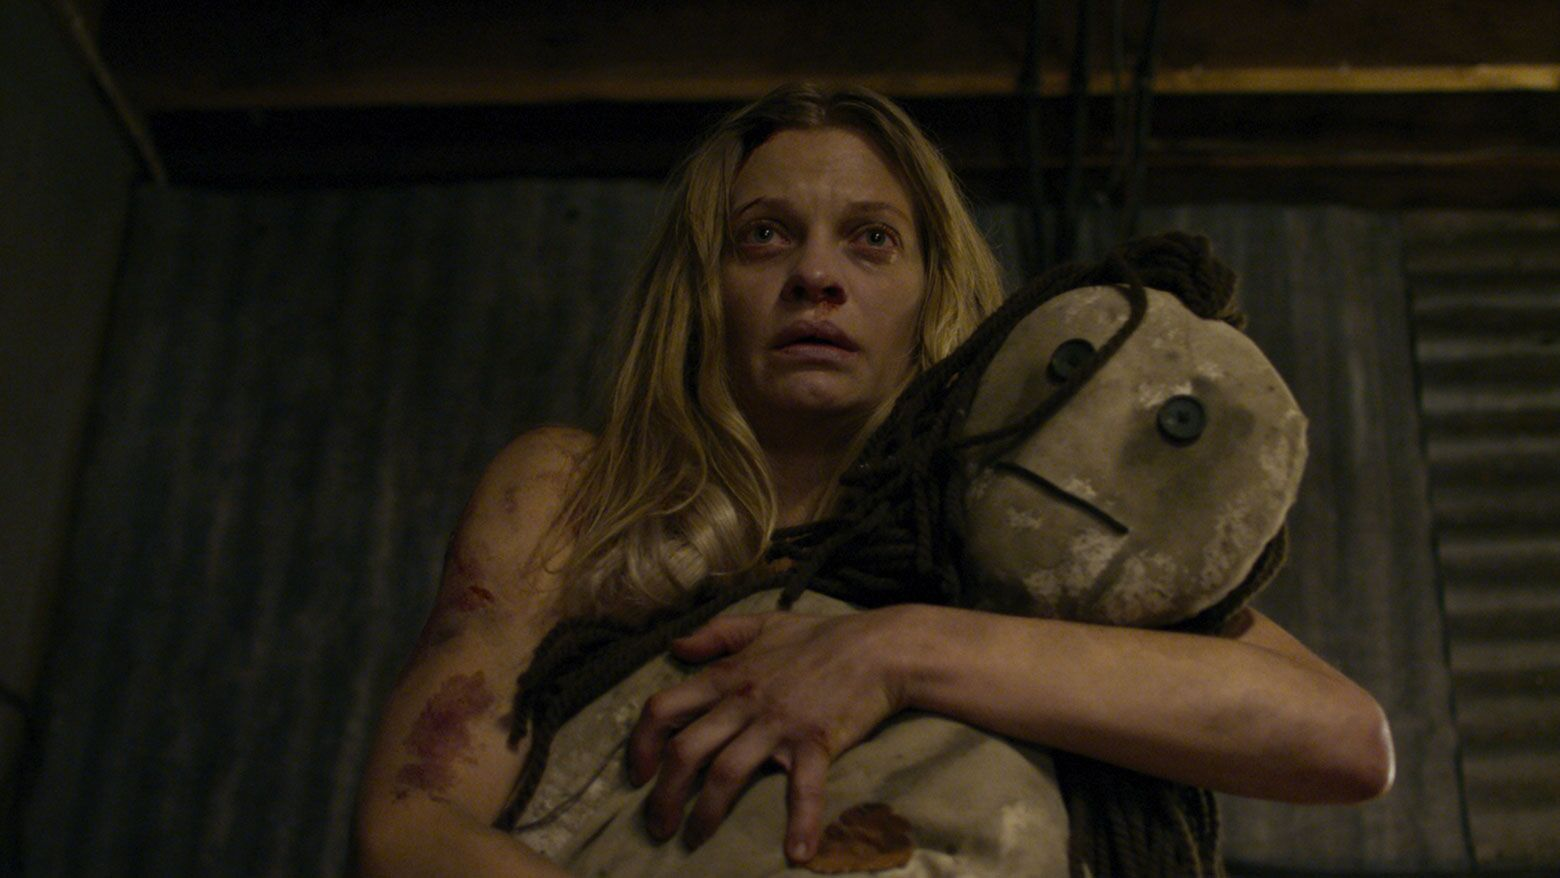 31 movies to watch in October: Incident in a Ghostland